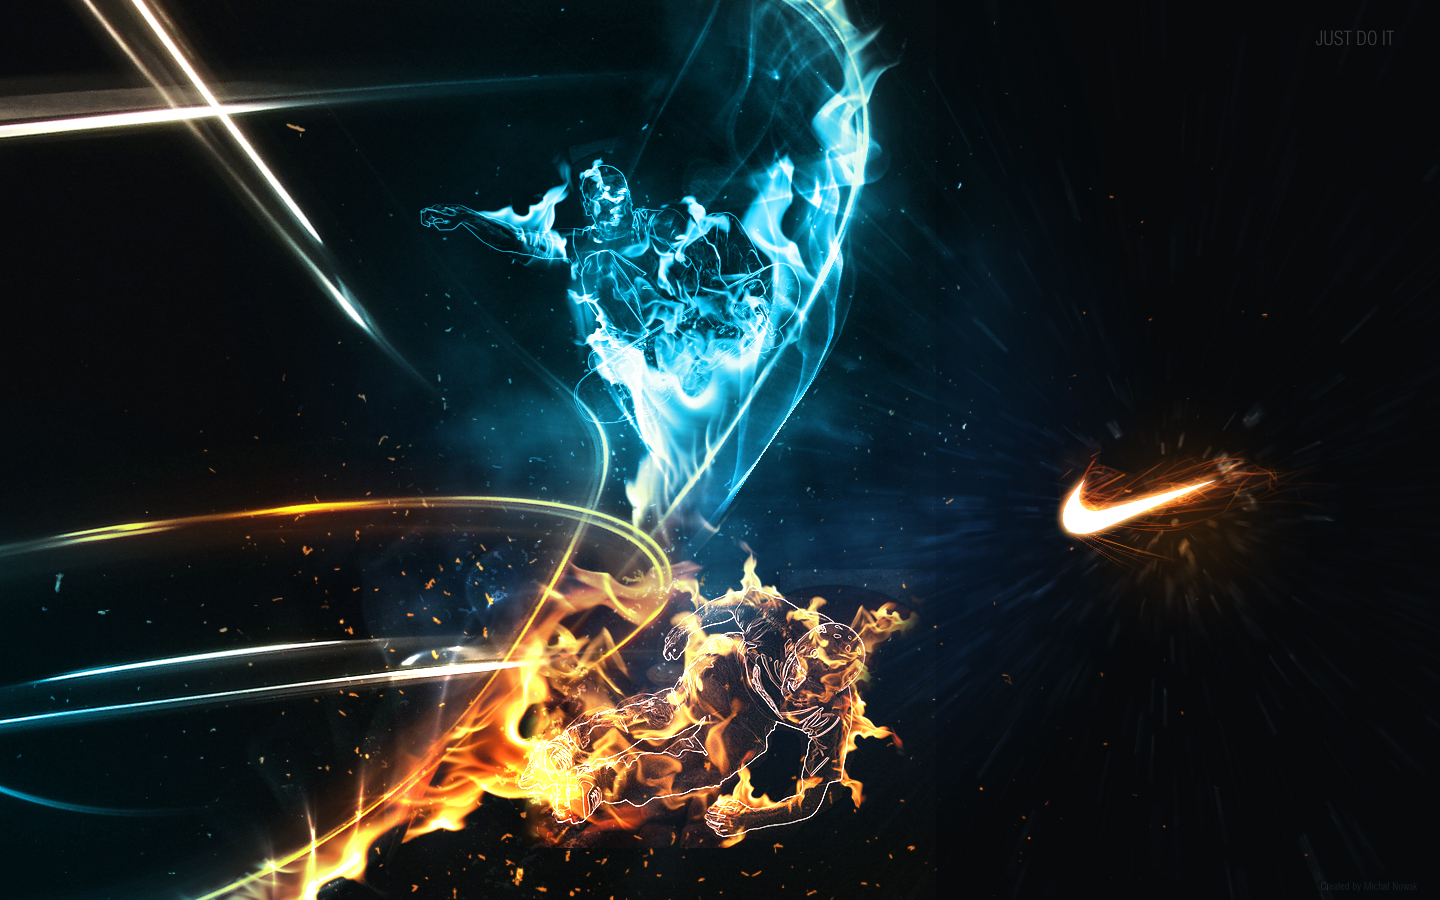 nike logo cool wallpapers hd 1080p Desktop Backgrounds for HD 1440x900